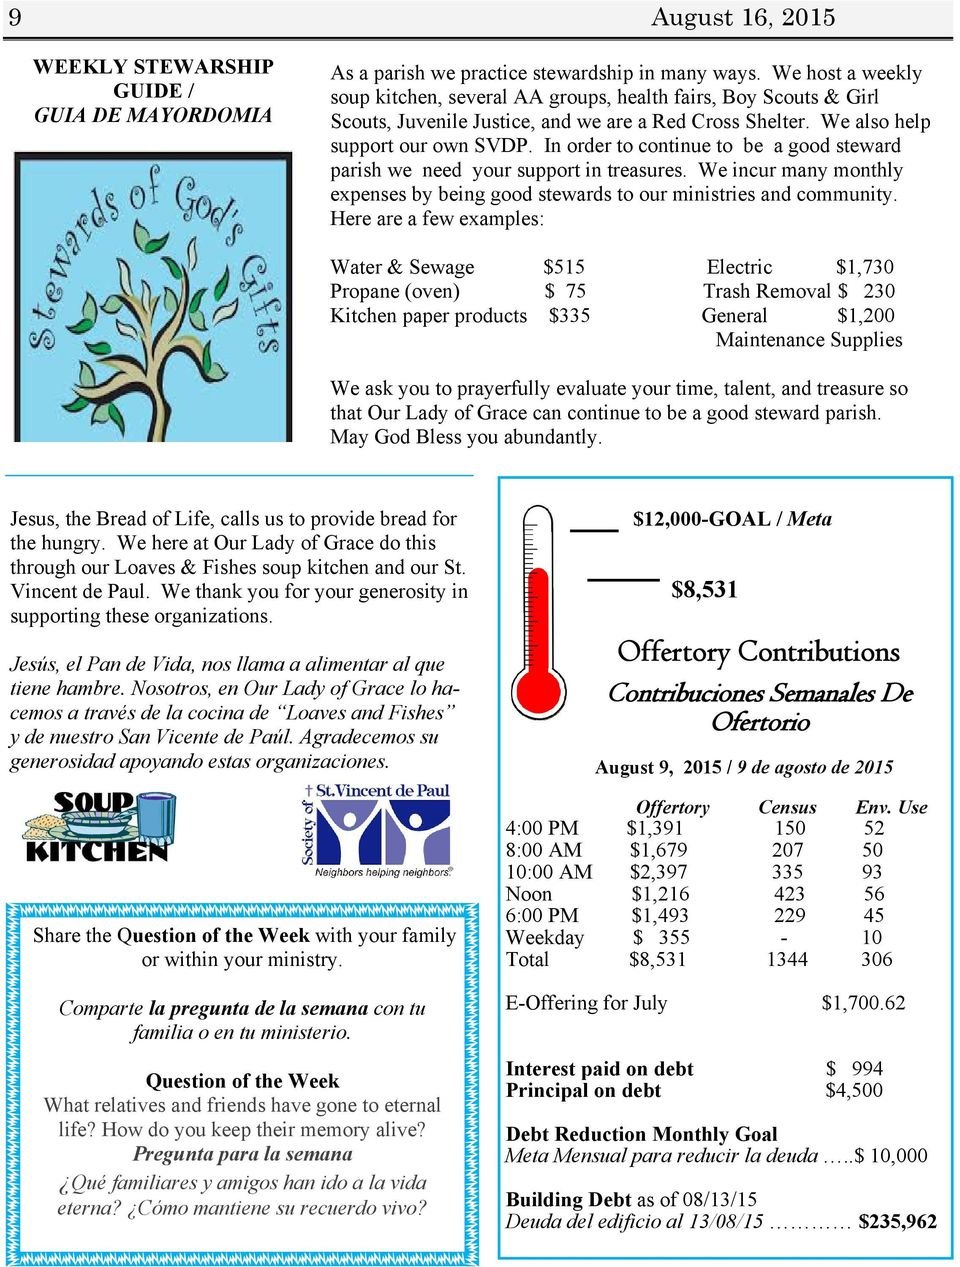 In order to continue to be a good steward parish we need your support in treasures. We incur many monthly expenses by being good stewards to our ministries and community.